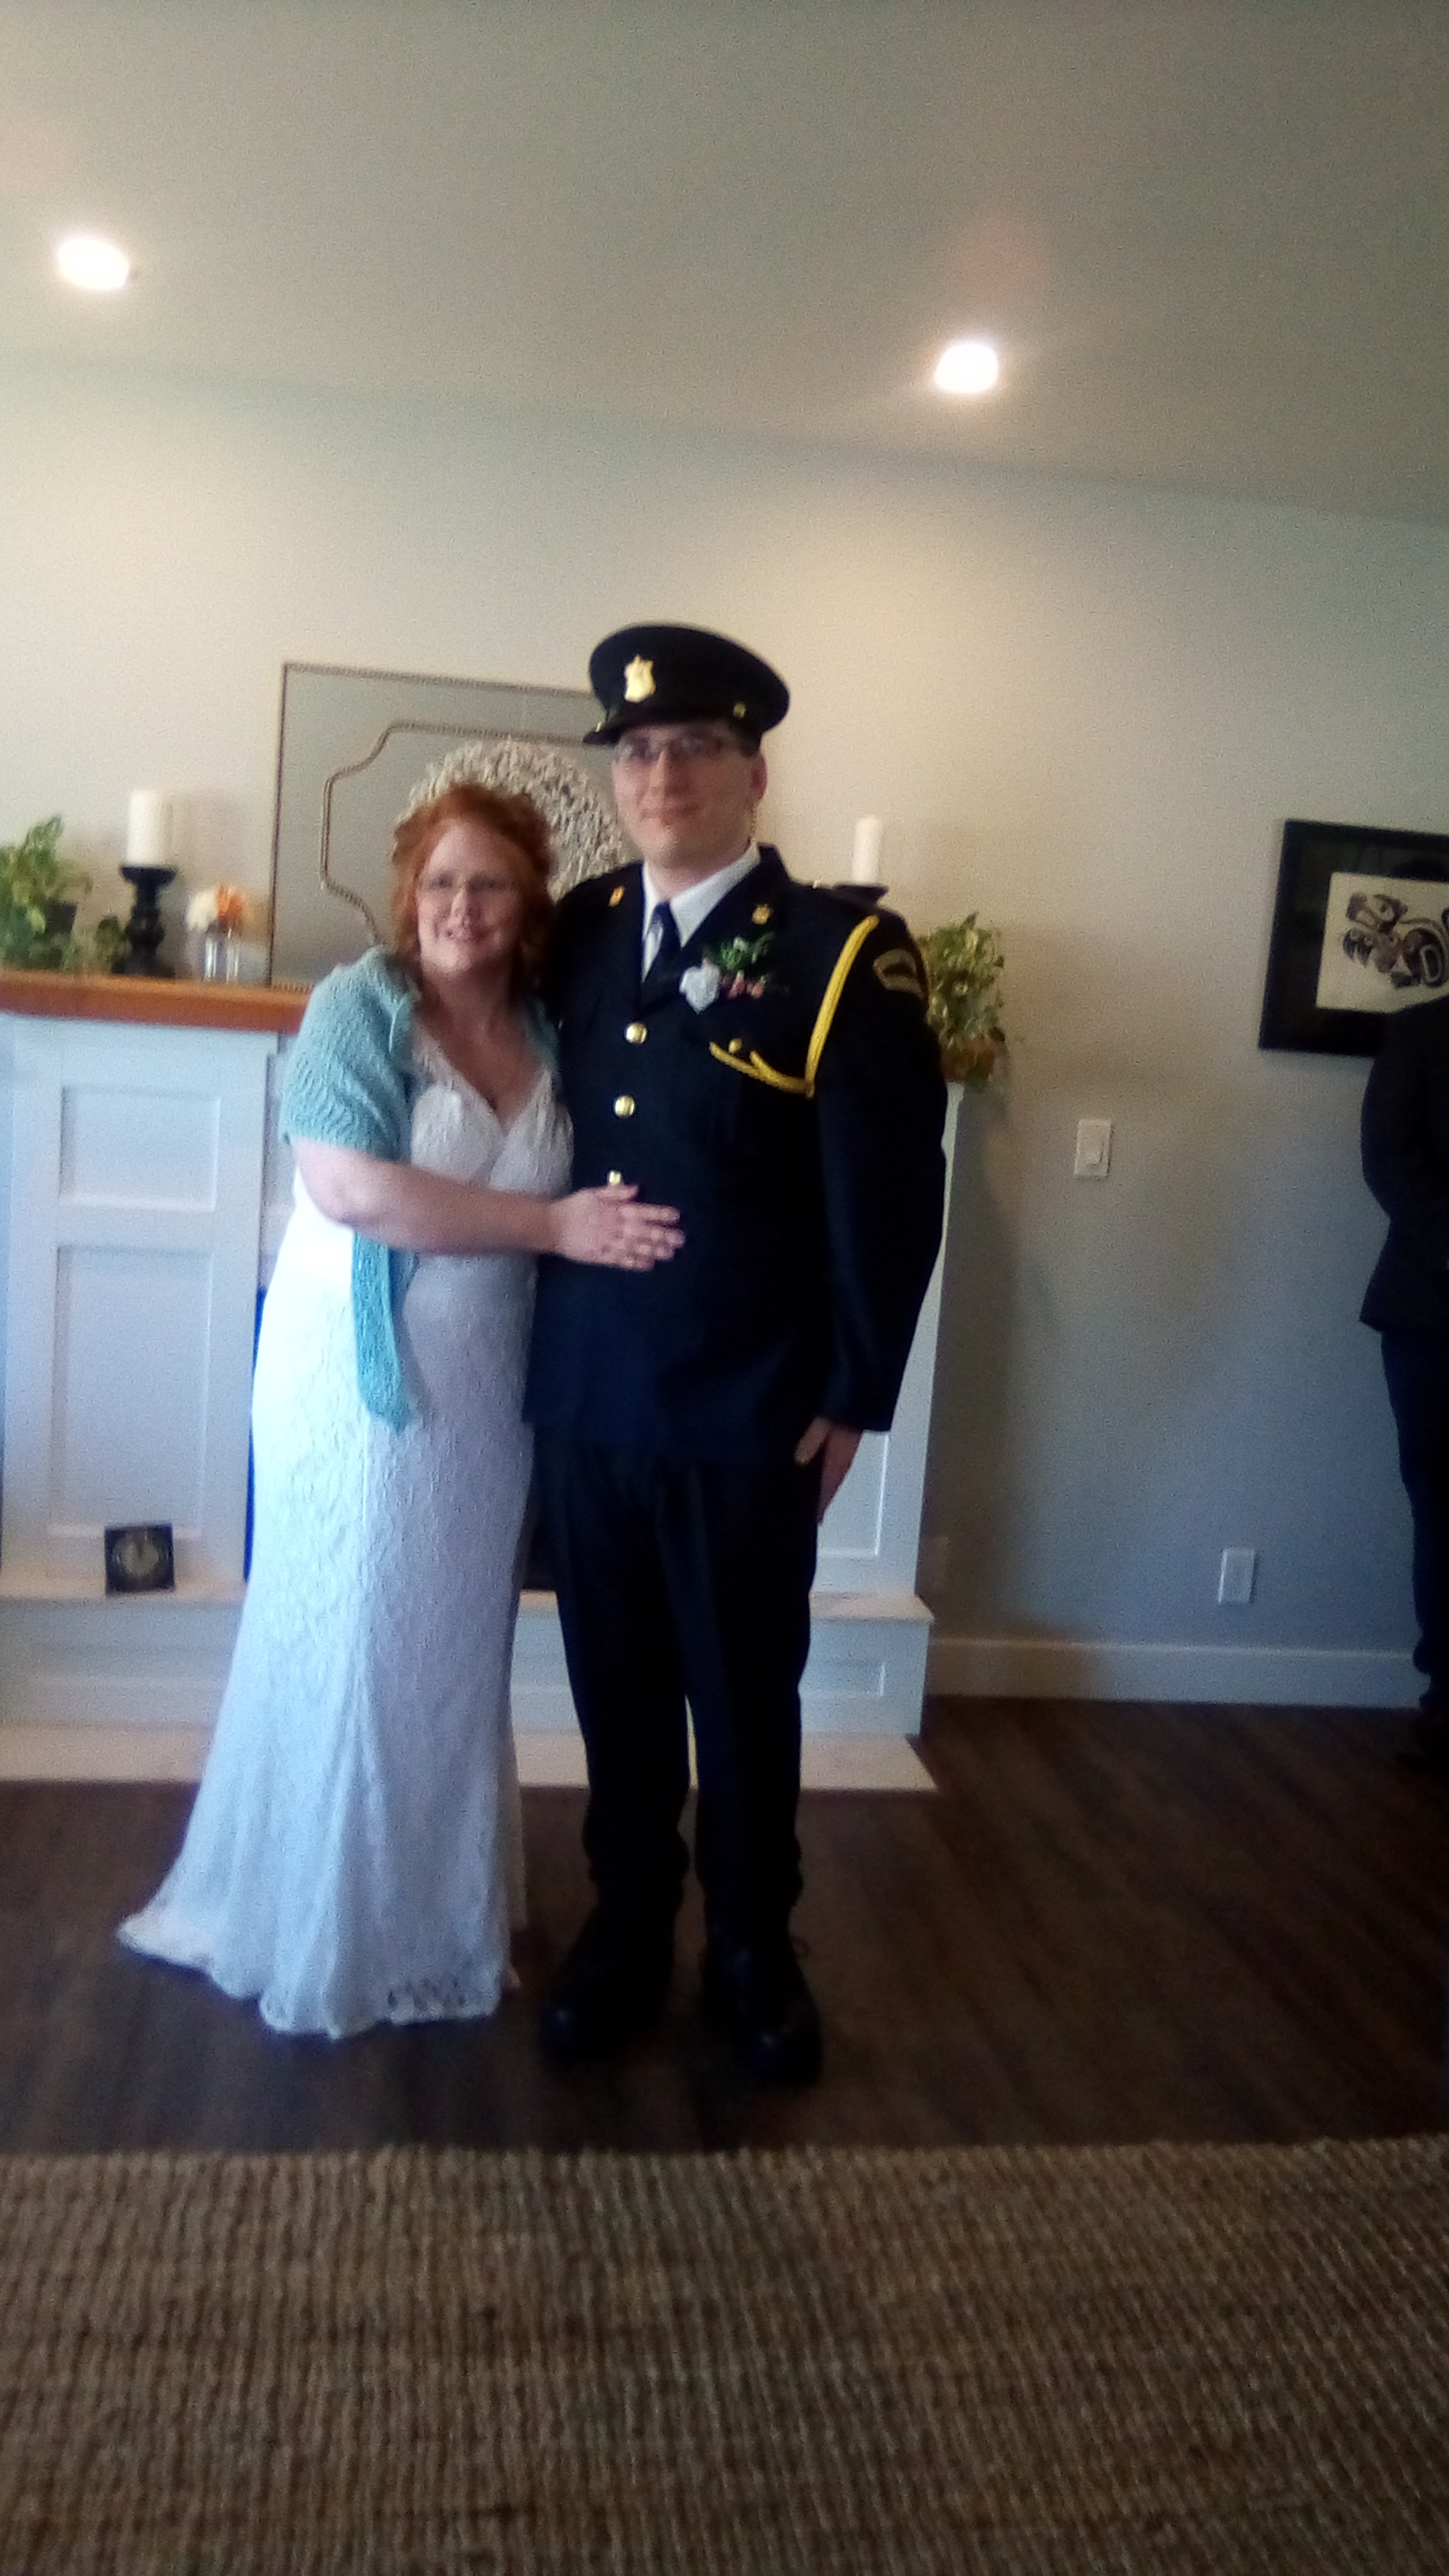 Congratulations to the new Mr. & Mrs. Kole Sluyter. Married April 18th with just their parents and grandparents as guests.